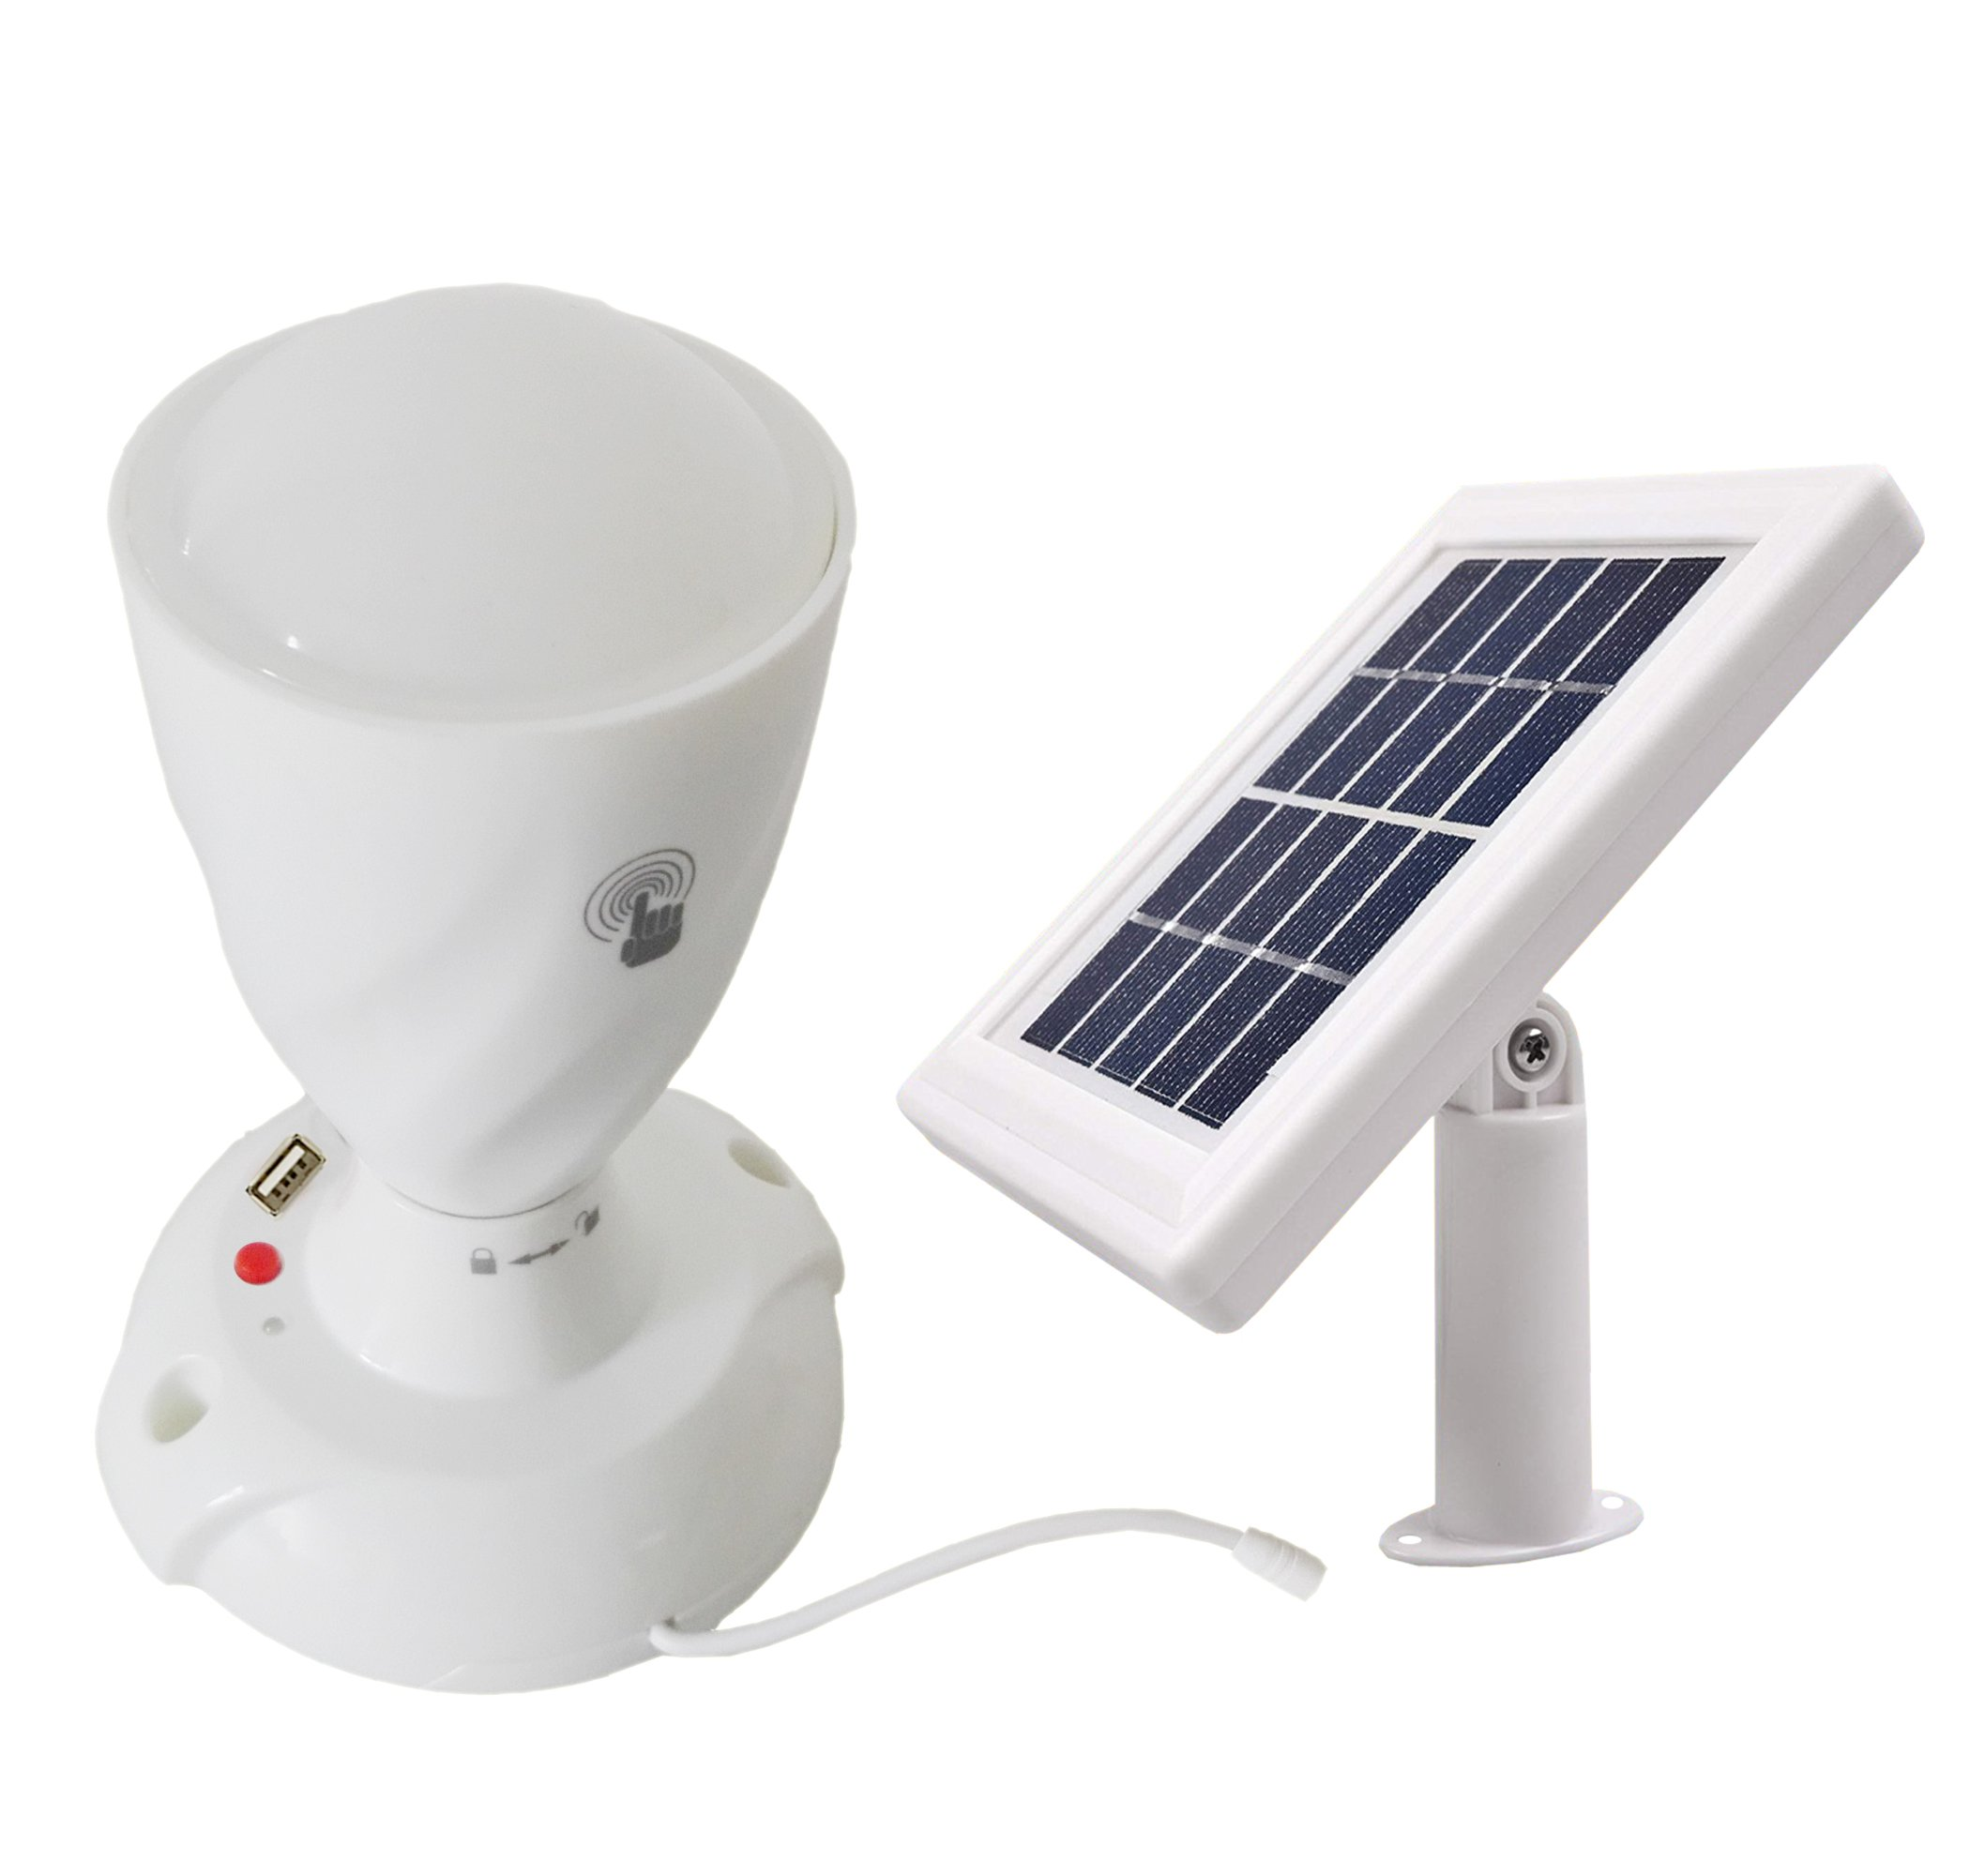 Solar Lighting System Kits Portable Finger Touch Switch 3 Power Modes Desk Lamp with USB Charger Solar Powered Led Torch/Shed Light/Wall Light/Ceiling Light Indoor